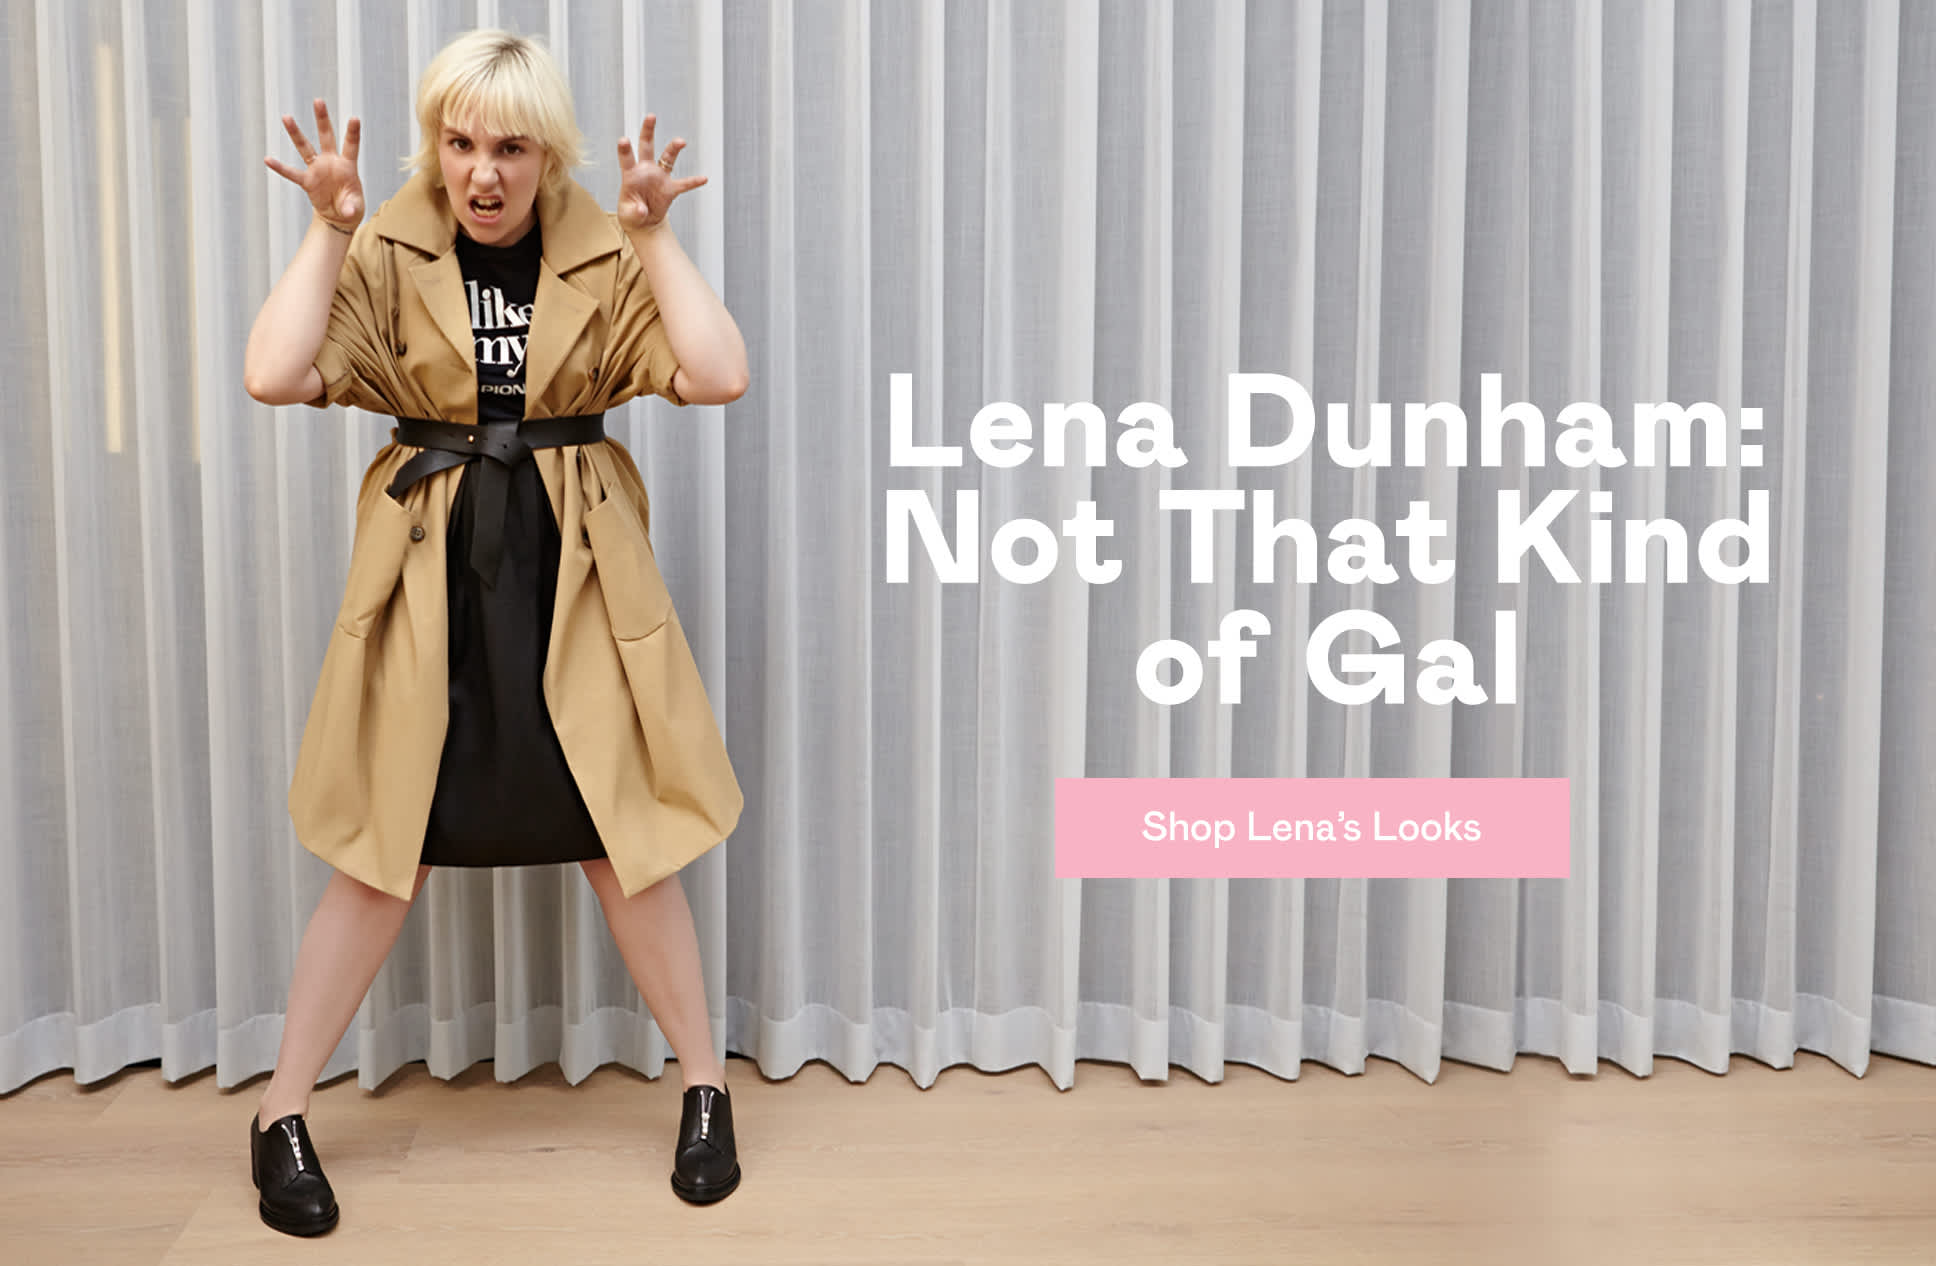 Lena Dunham is a Nasty Gal